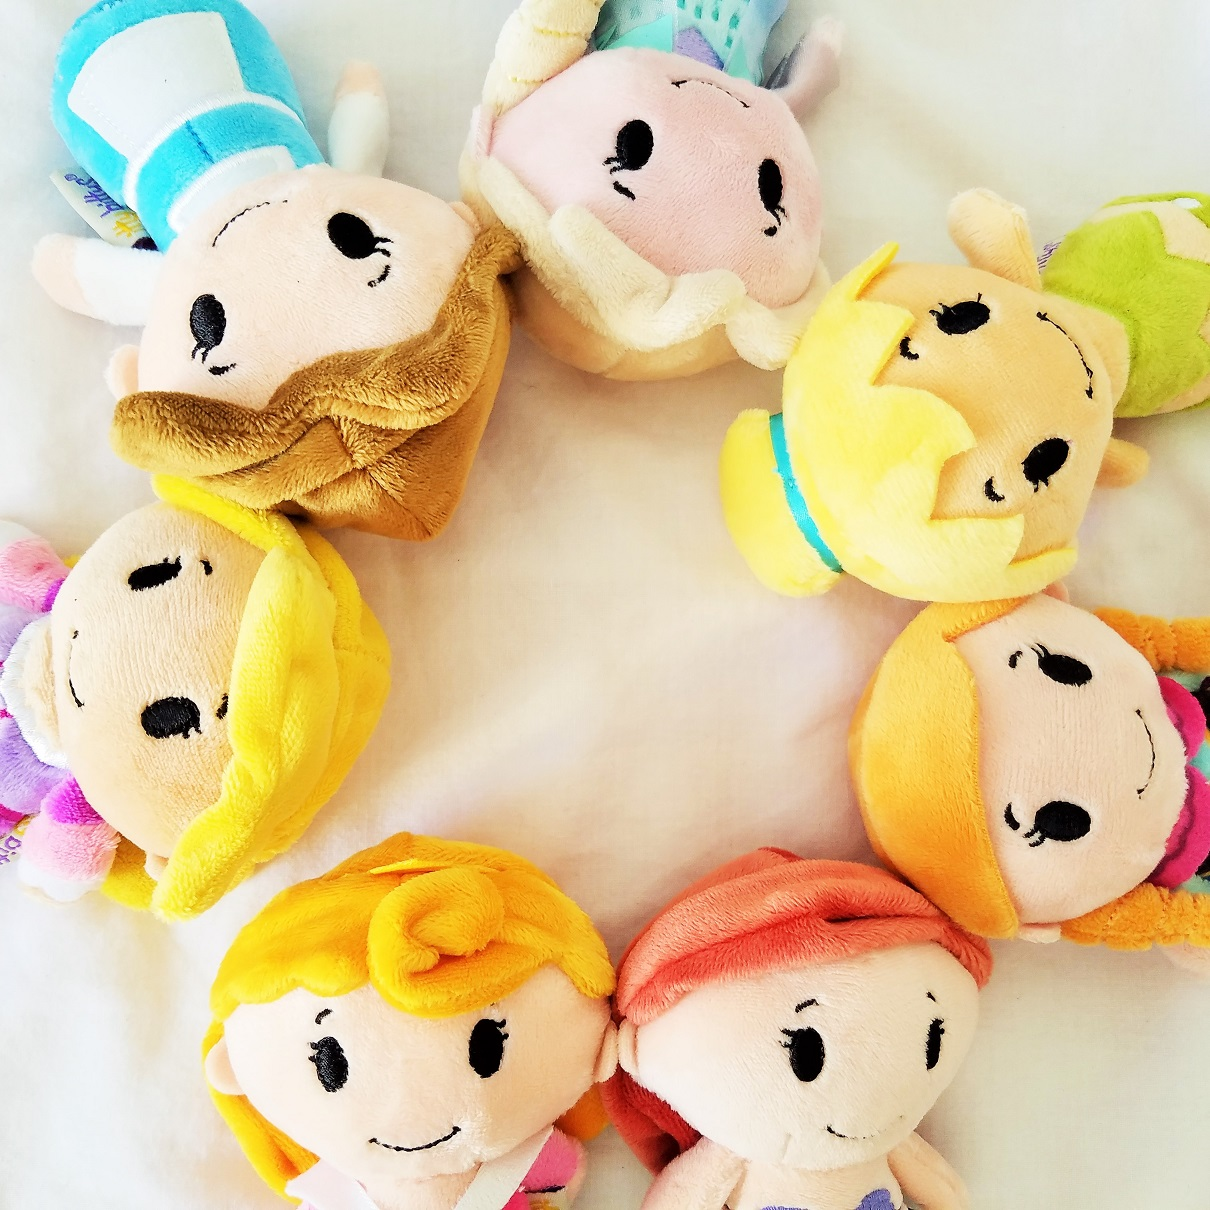 Disney Stuffed Toys Princesses